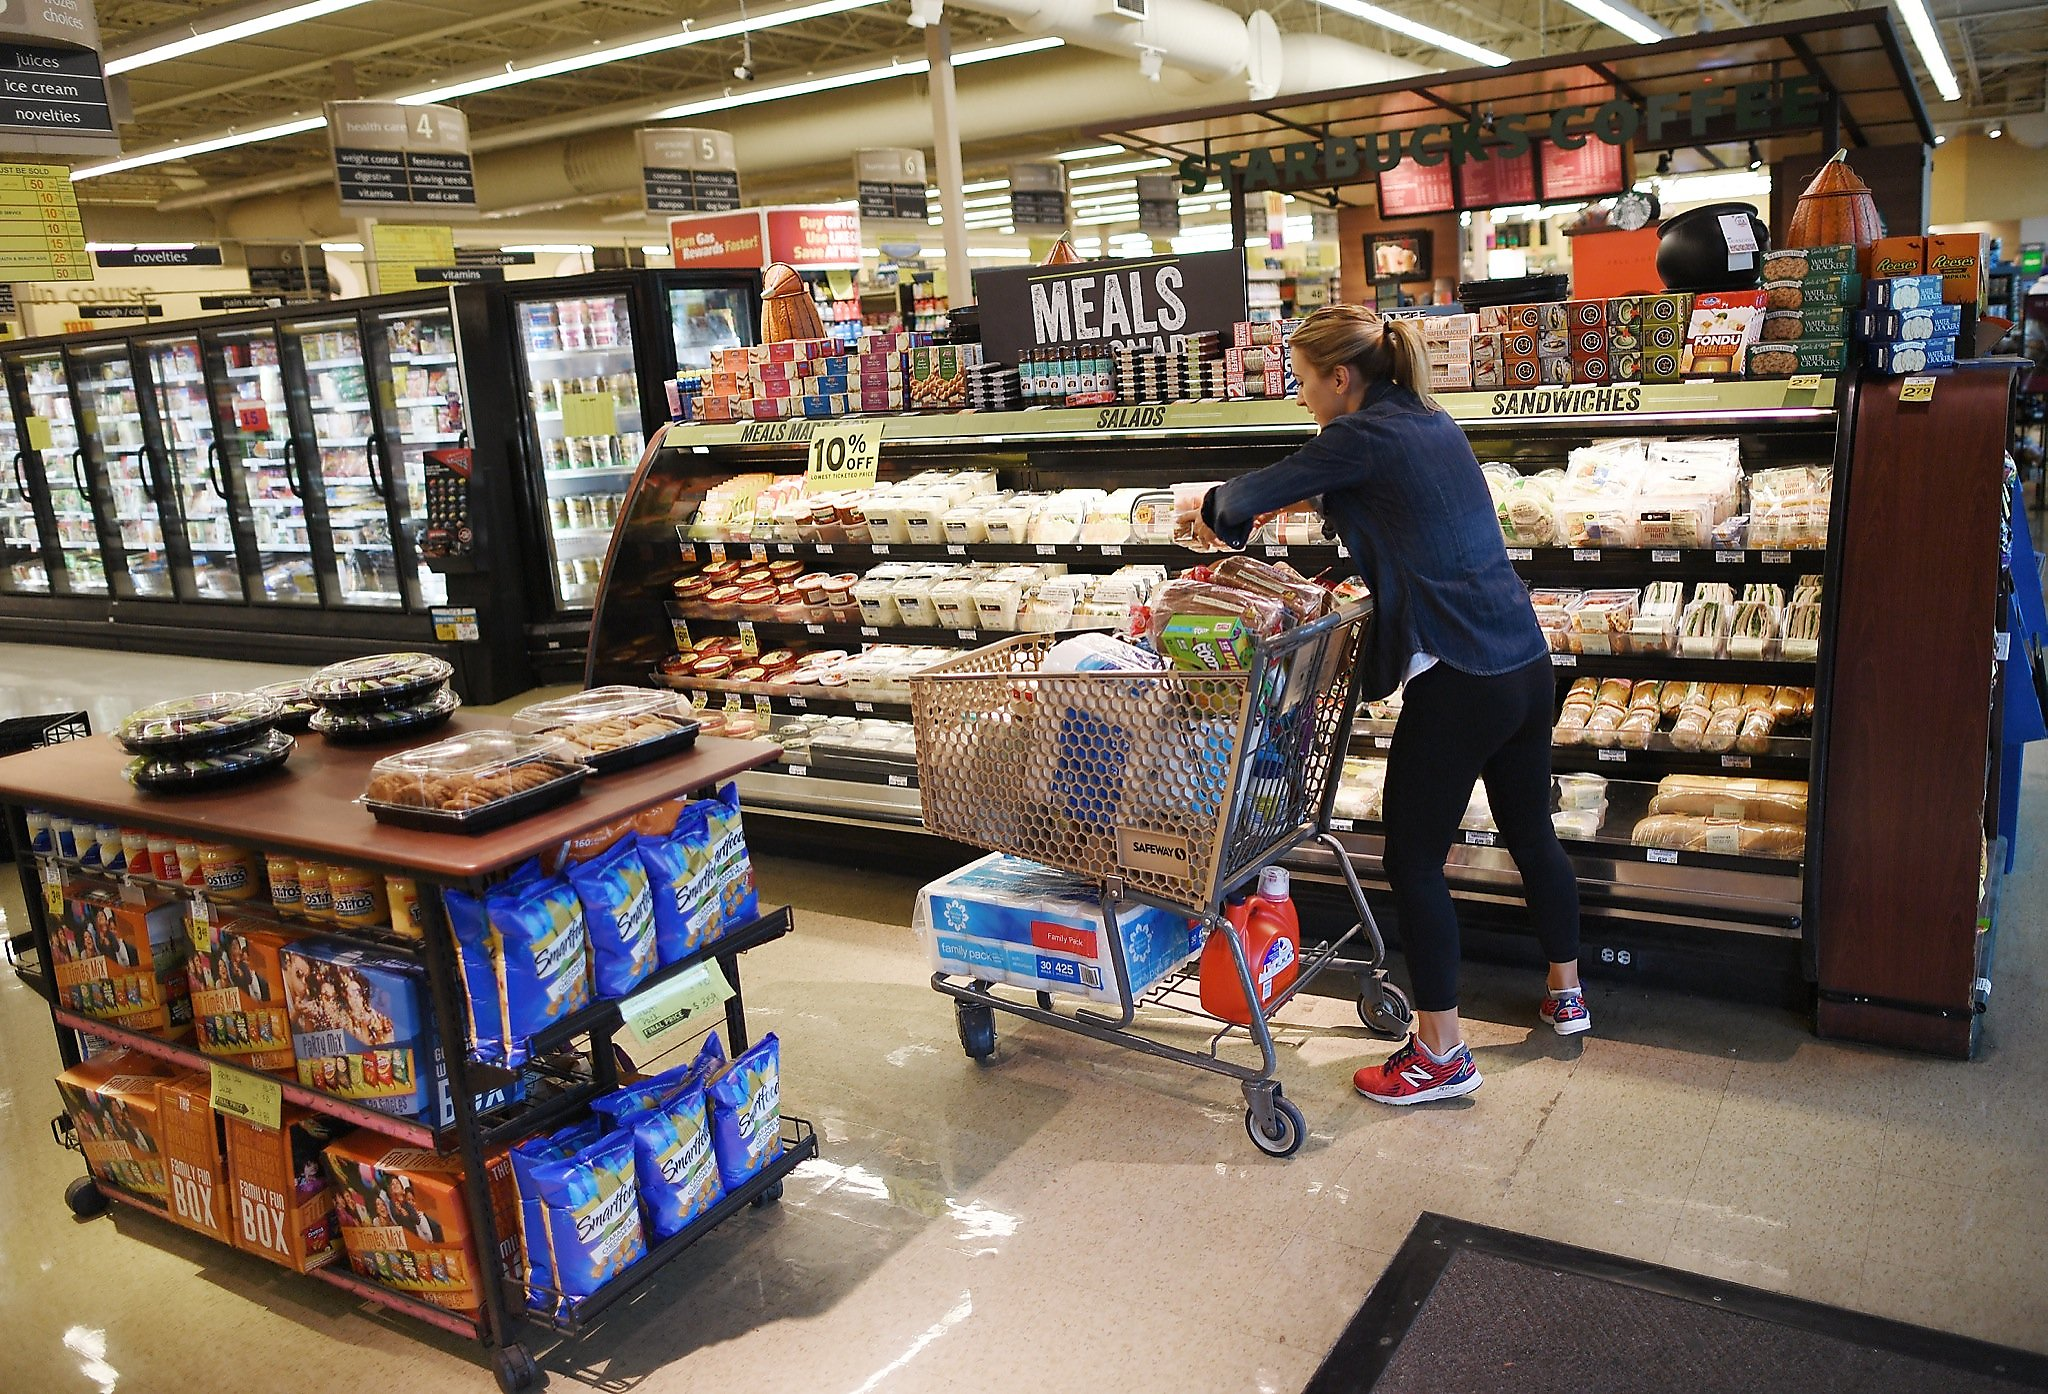 Safeway secrets revealed, avalanche of complaints answered in Reddit AMA -  SFGate